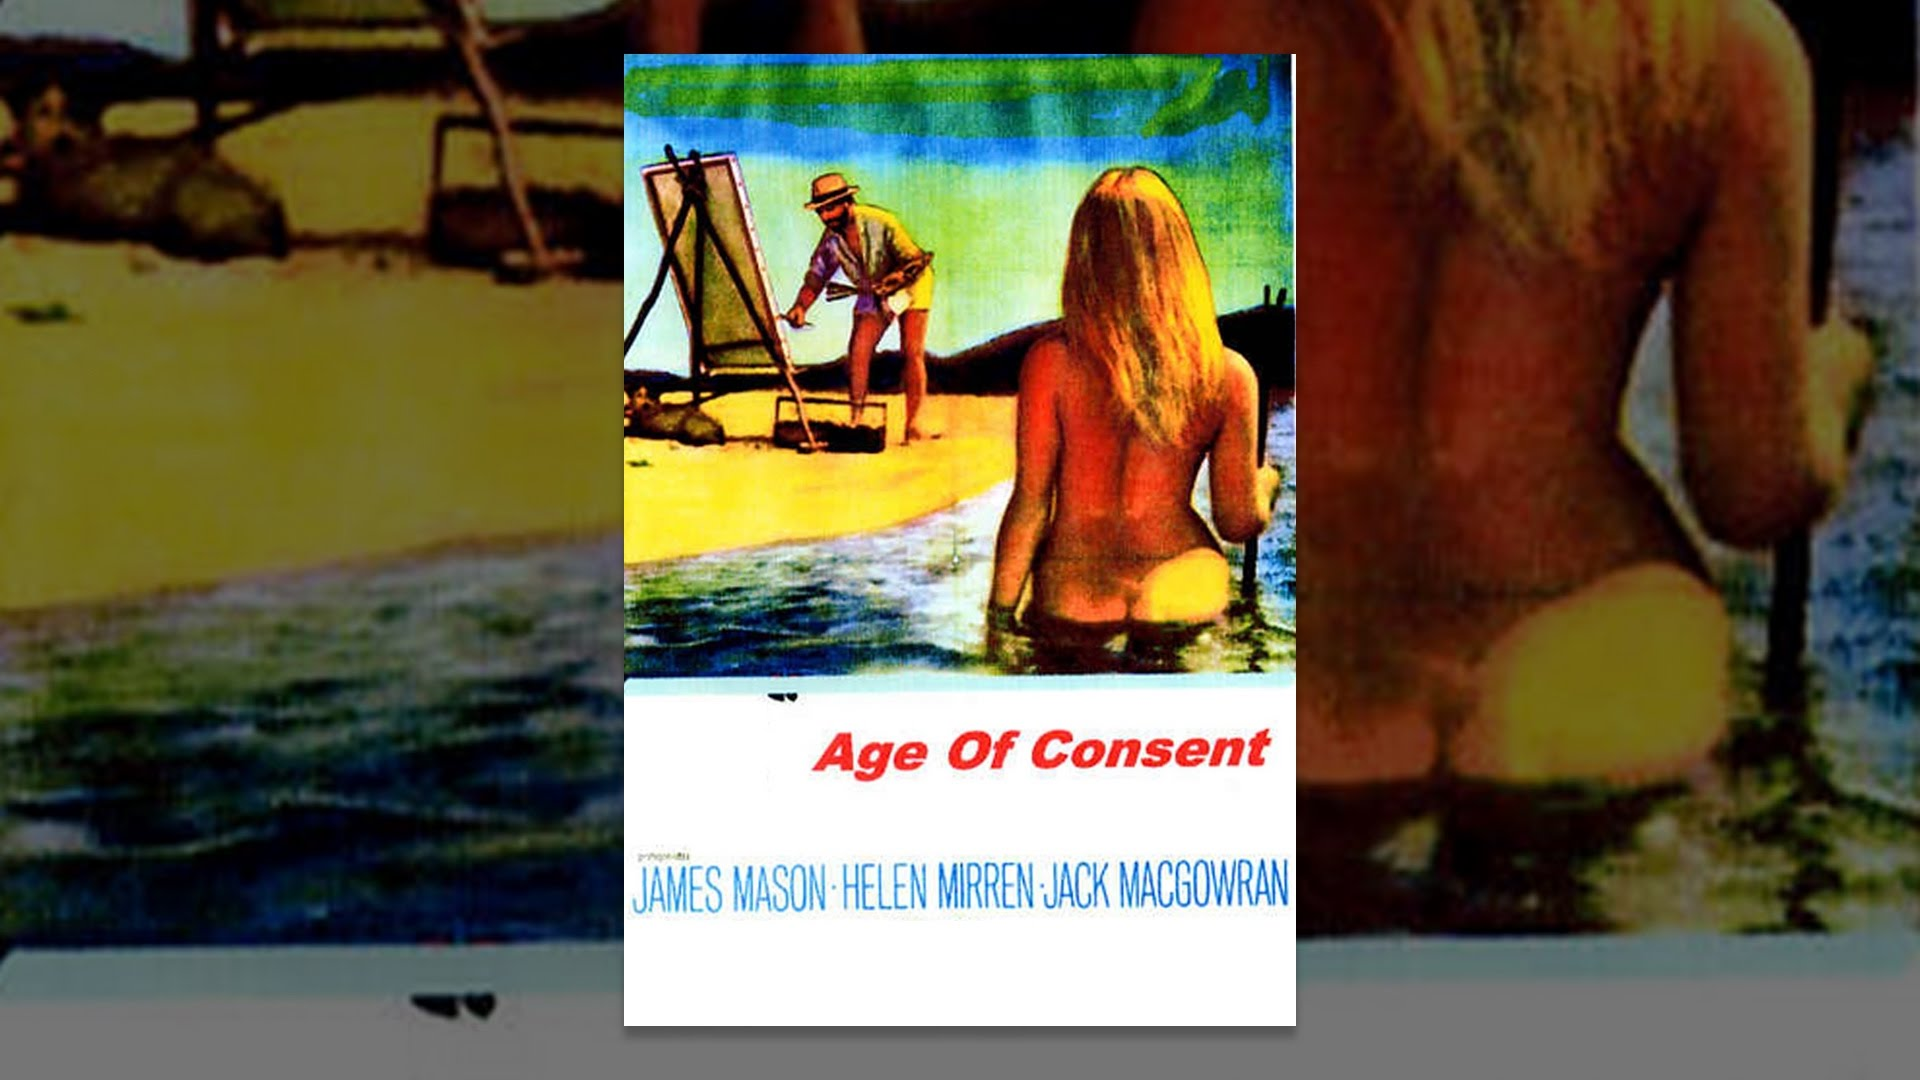 What is the age of consent in Arkansas